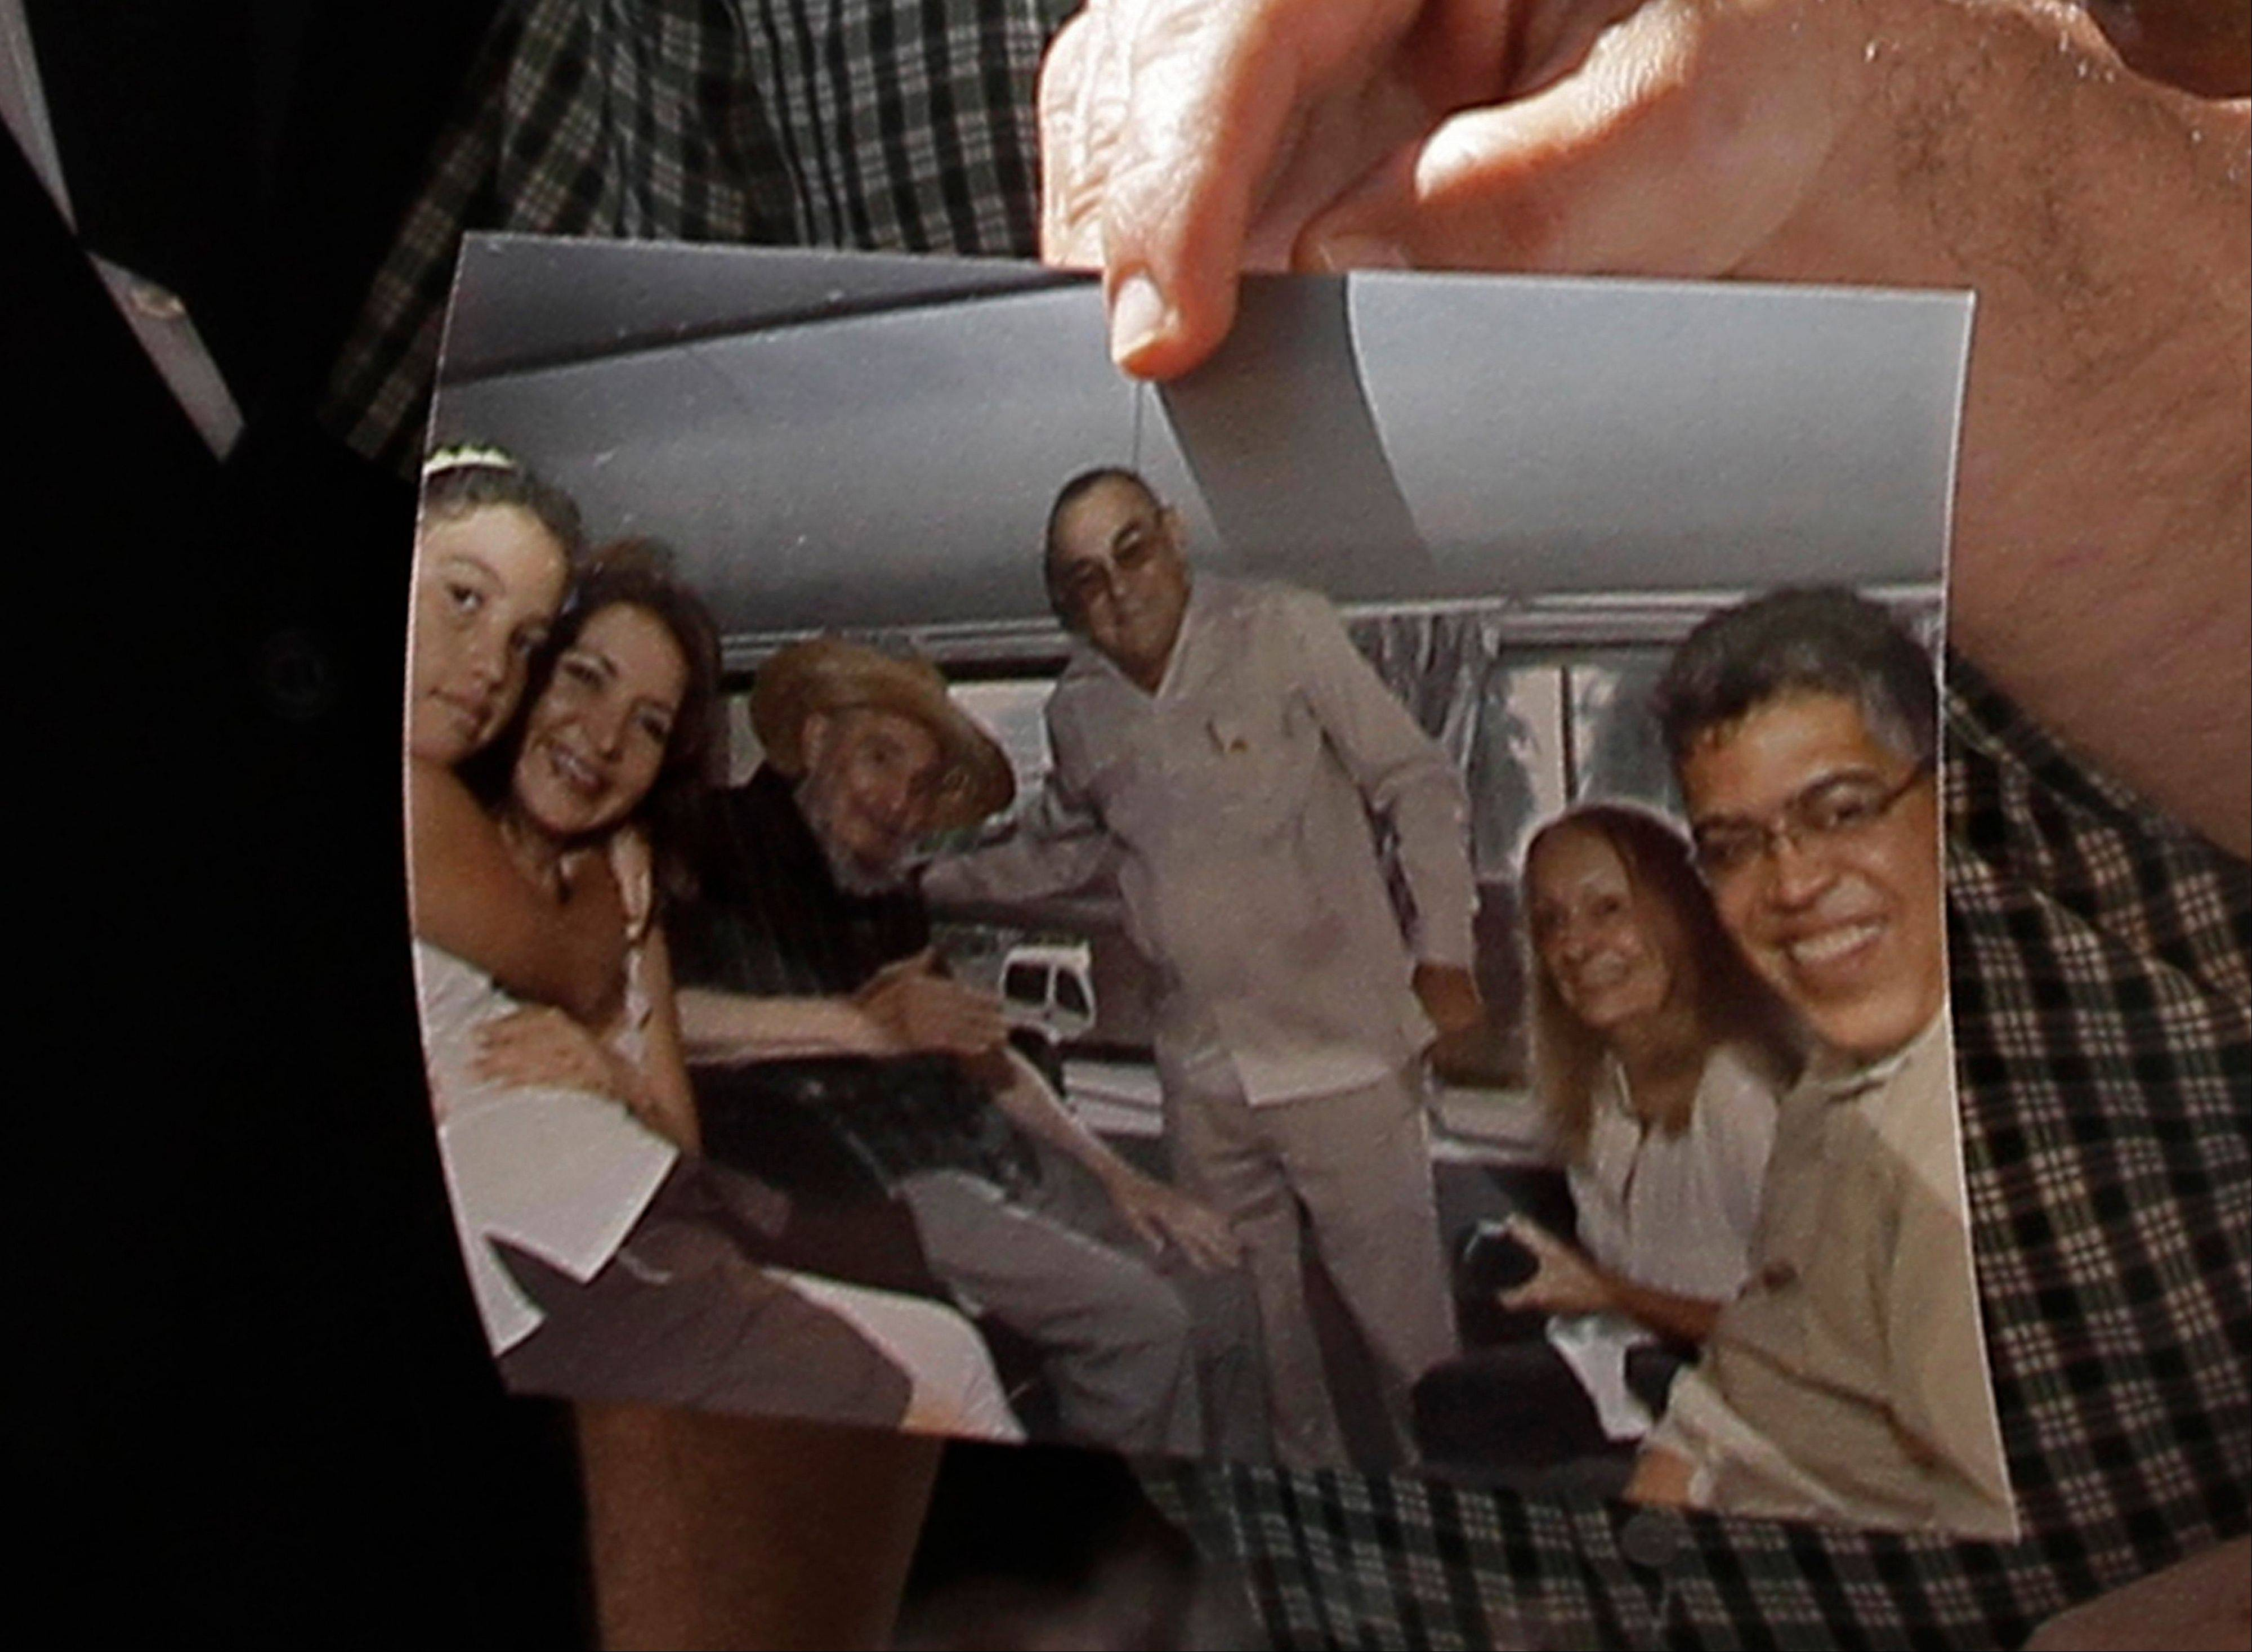 Former Venezuelan Vice President Elias Jaua shows a picture of Cuba�s leader Fidel Castro, third from left, in Havana Sunday. According to Jaua, the picture was taken Saturday inside a van.